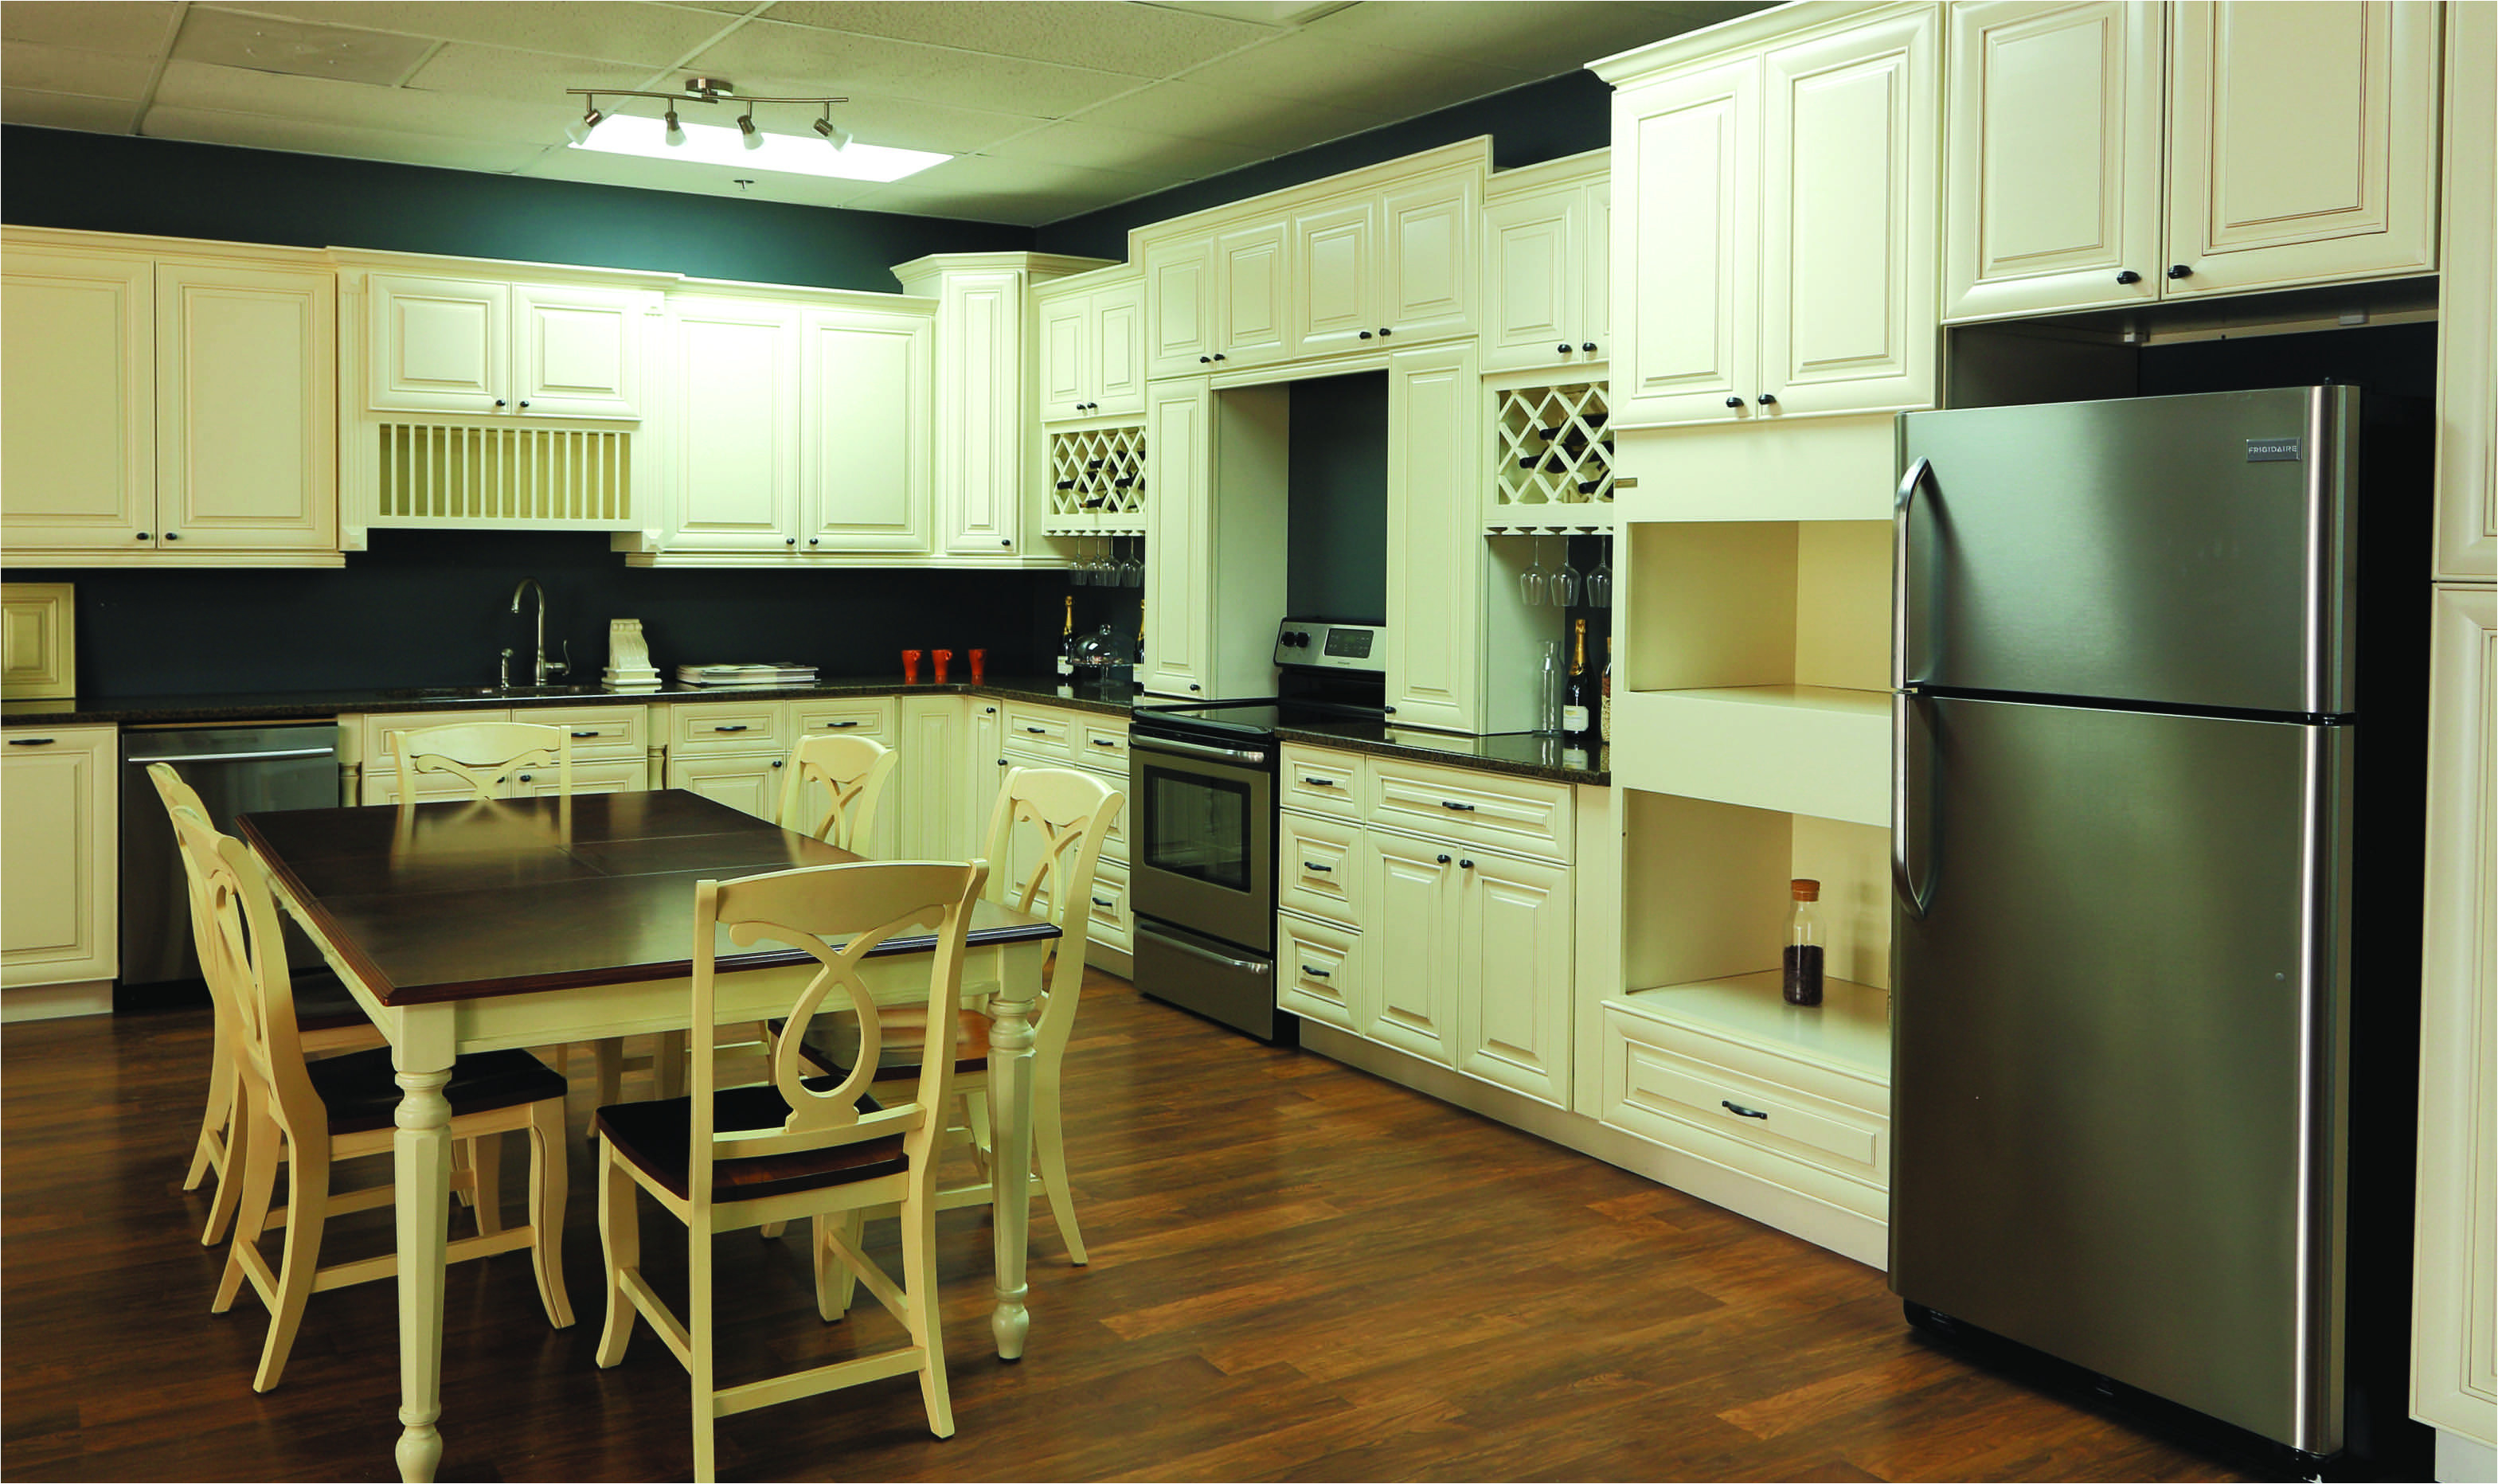 Appliances Duluth Mn Craigslist by Masters Of Home Remodeling 1 2 0 0 511047fe 640a 4249 972a